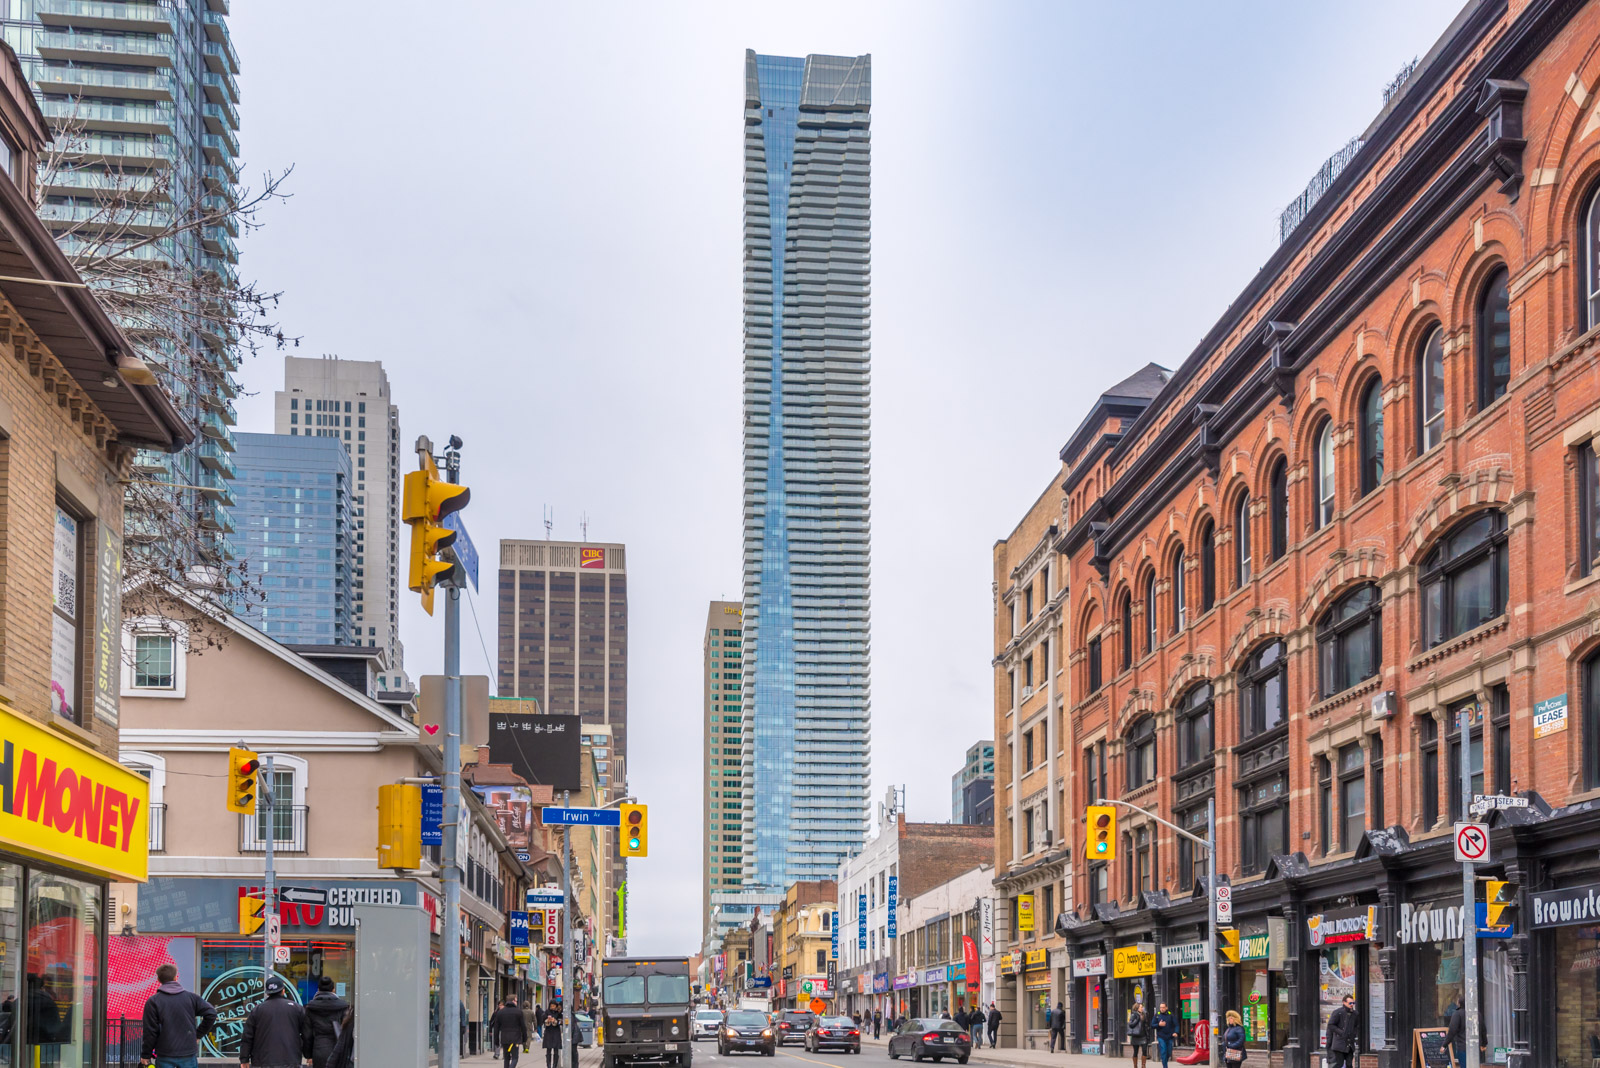 1 Bloor seen from a distance, showing shops, cars, buildings and more. Picture: Wins Lai, Toronto Real Estate Agent